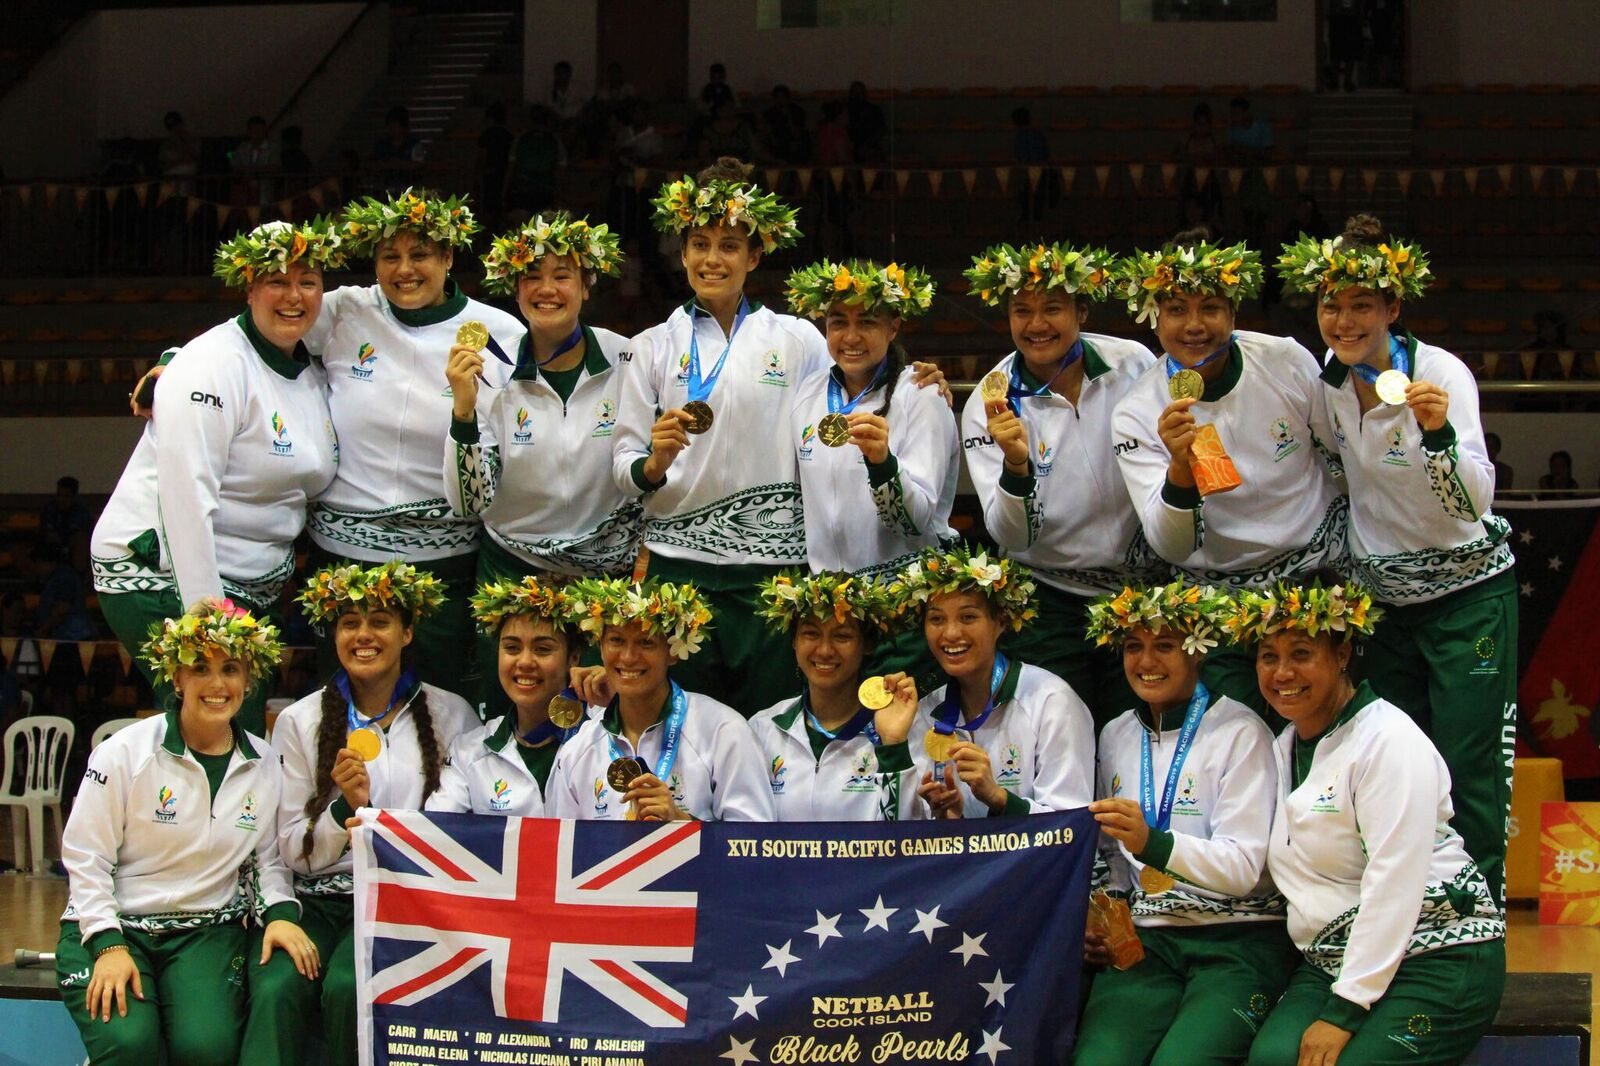 Cook Islands won 44-43 to earn their first netball gold medal since 1991 ©Games News Service